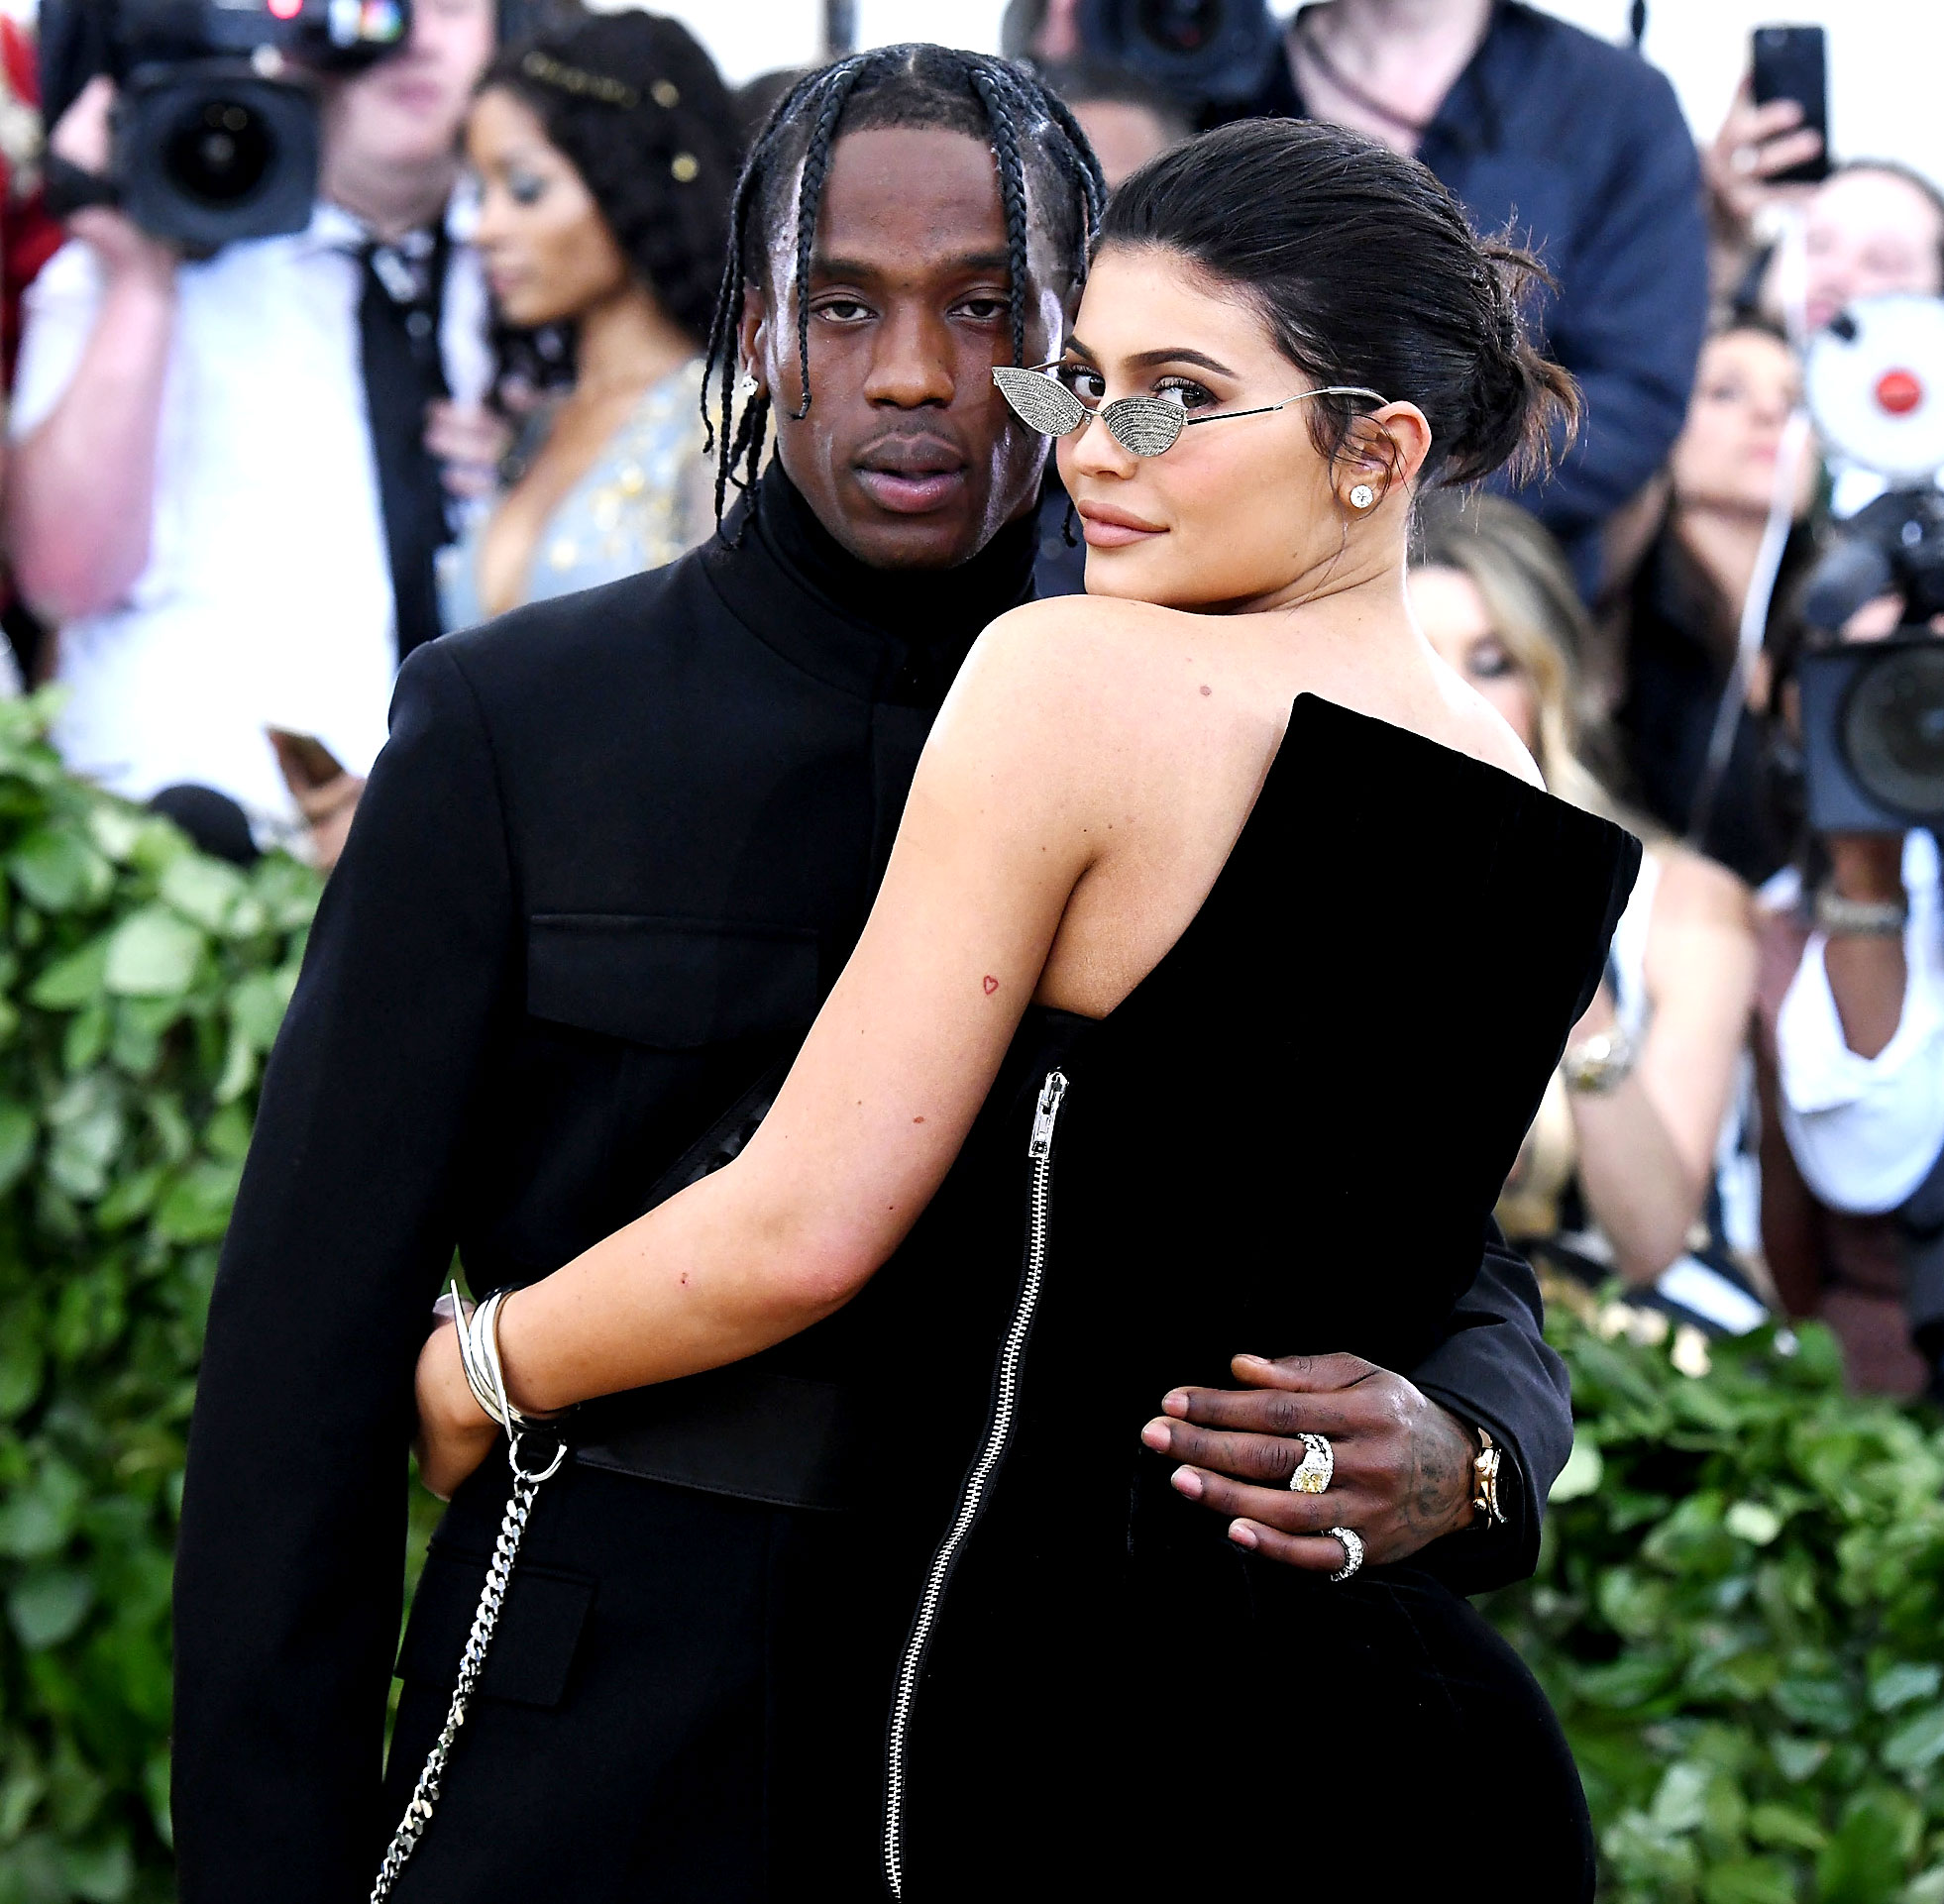 """Kylie Jenner and Travis Scott's Sweetest Quotes About Their Relationship - The Kylie Cosmetics CEO gushed about her rapper beau on his 28th birthday. """"Watching you evolve into the partner, friend, son, and father you are today has been so fulfilling,"""" she captioned an Instagram slideshow in April 2019."""